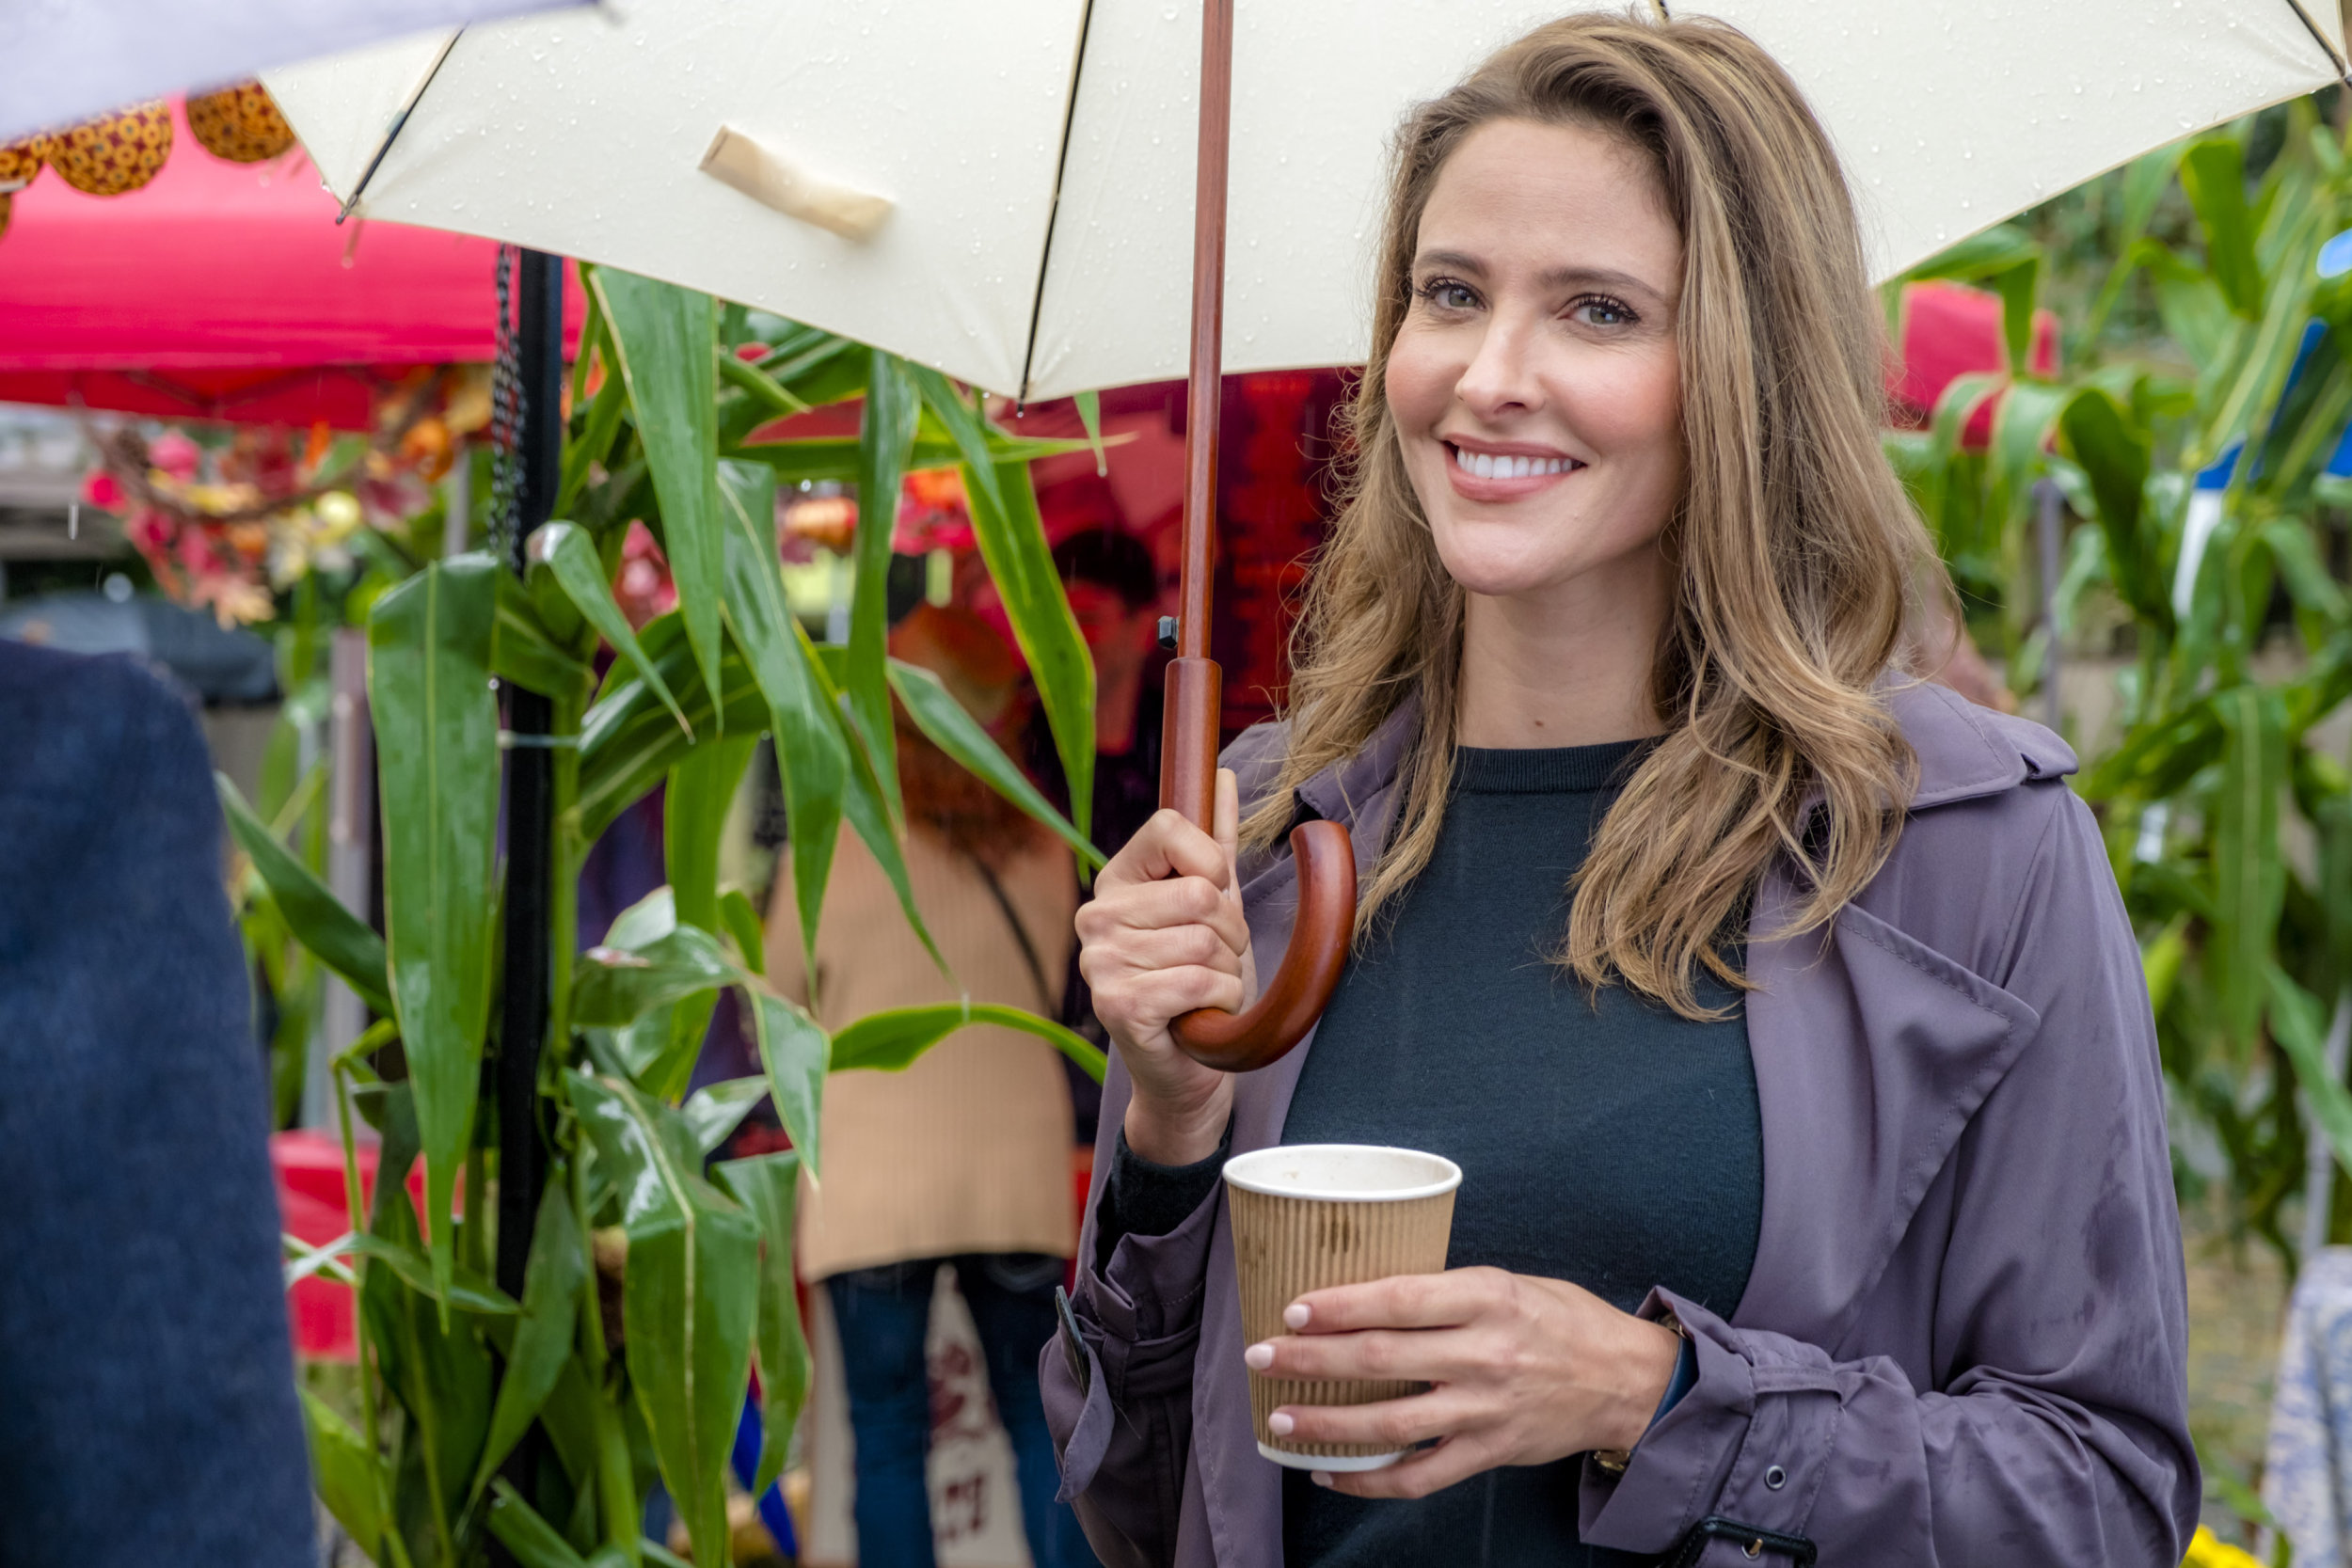 A Harvest Wedding Cast.Jill Wagner As Sarah Bloom On A Harvest Wedding Hallmark Channel